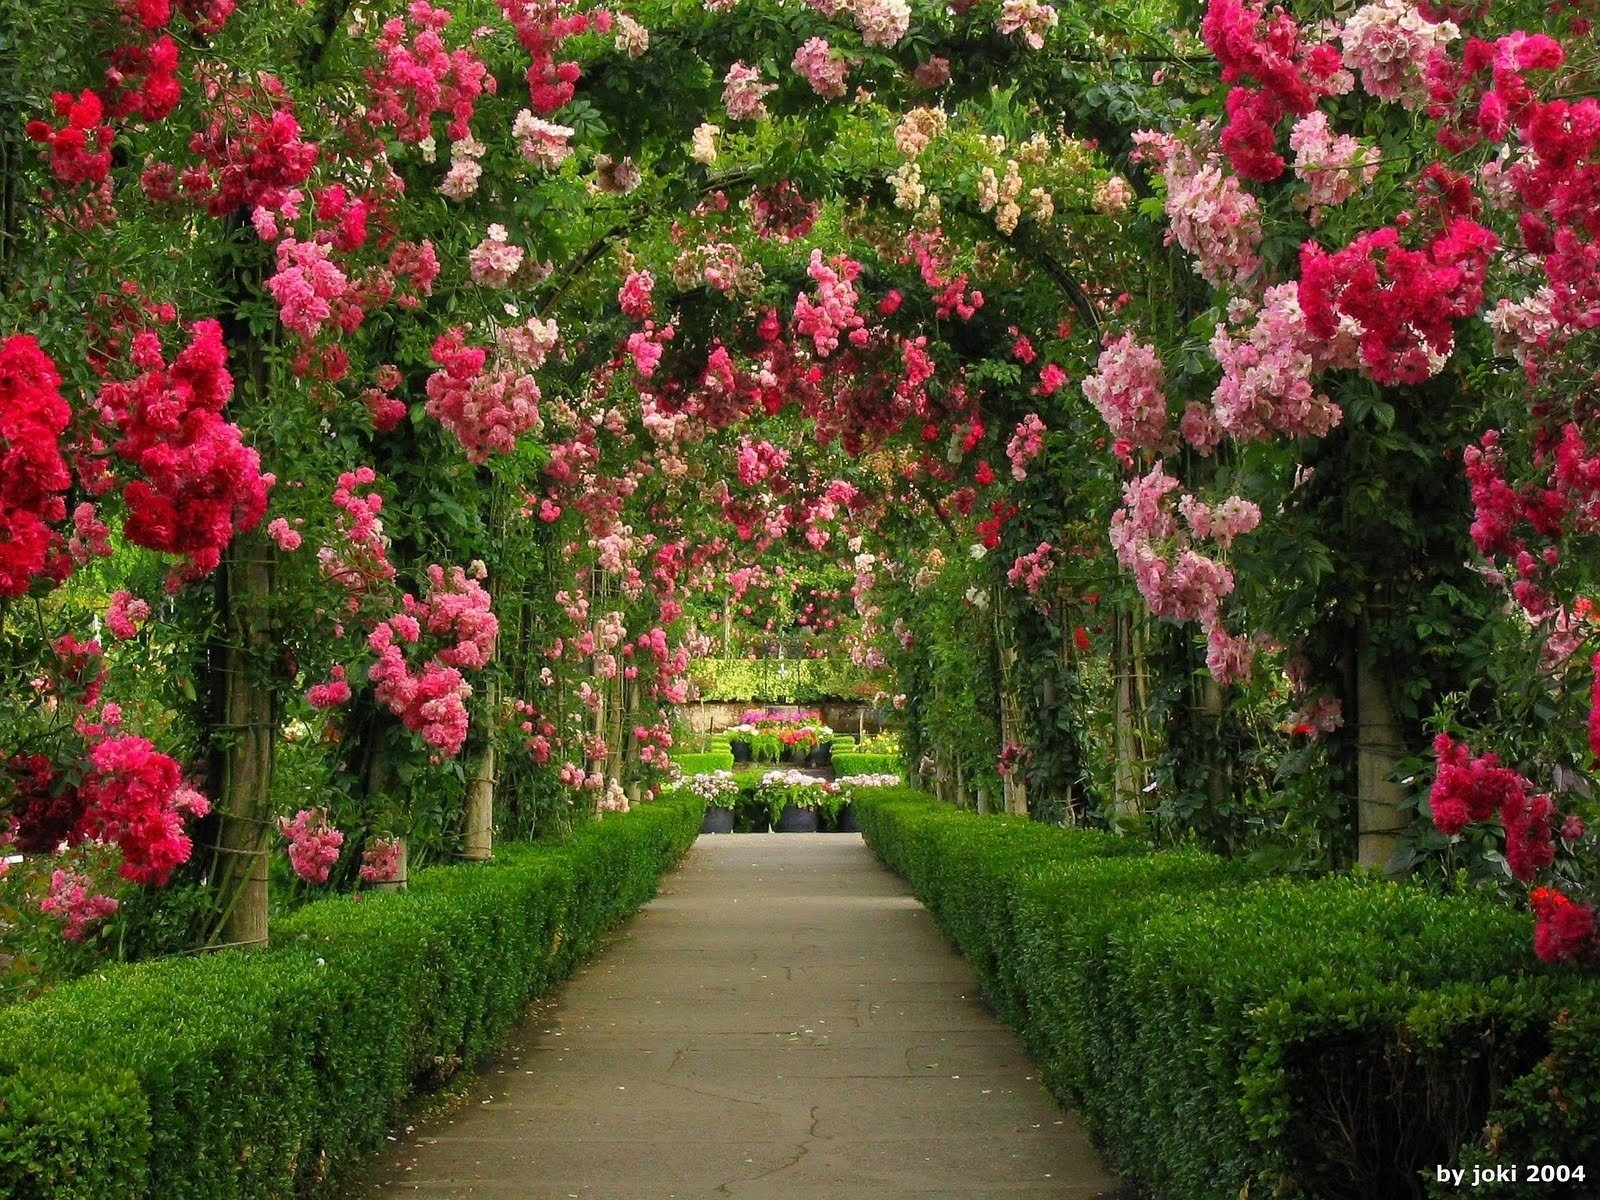 arches in rose garden wallpaper and background image | 1600x1200